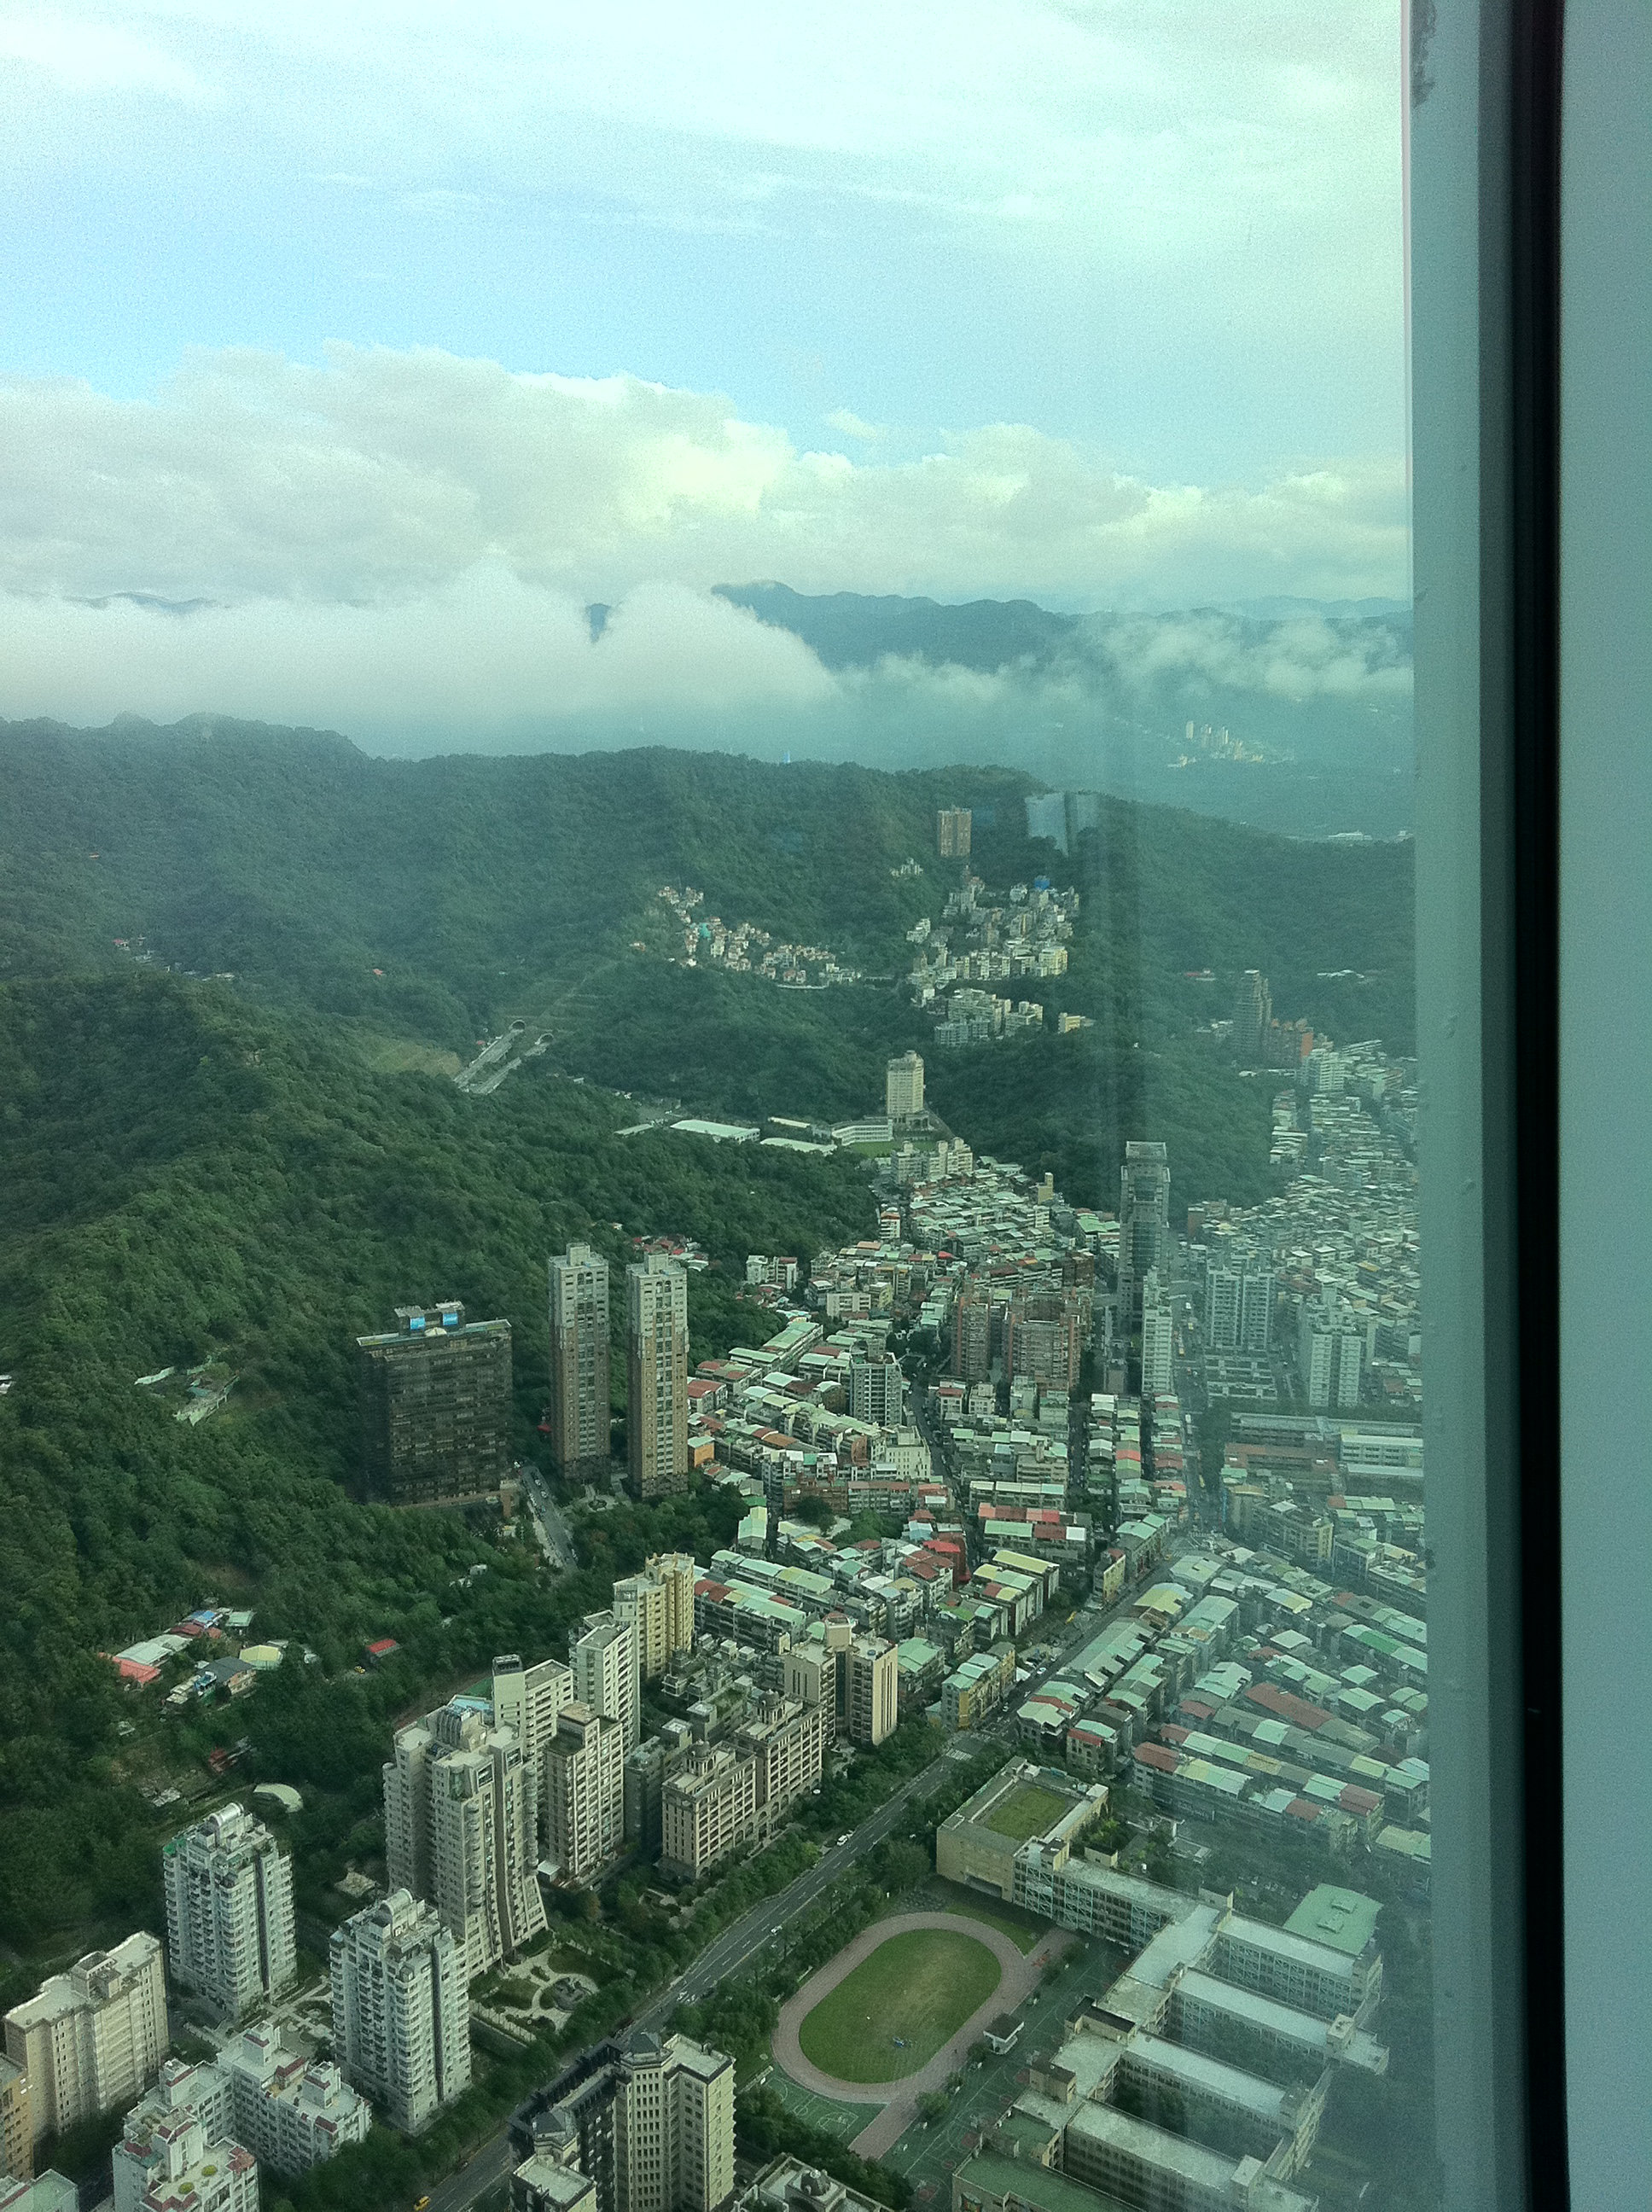 The City of Taipei runs straight into forested hills (View from Taipei 101)